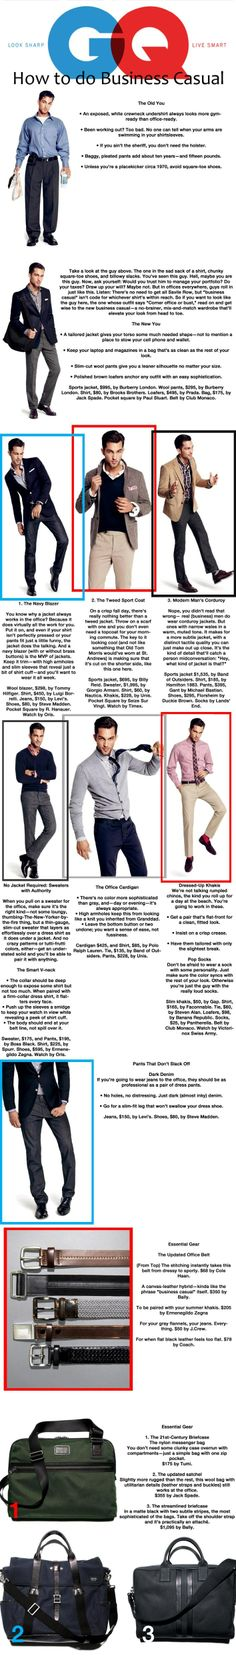 How to do business casual. Great way to be creative and professional.